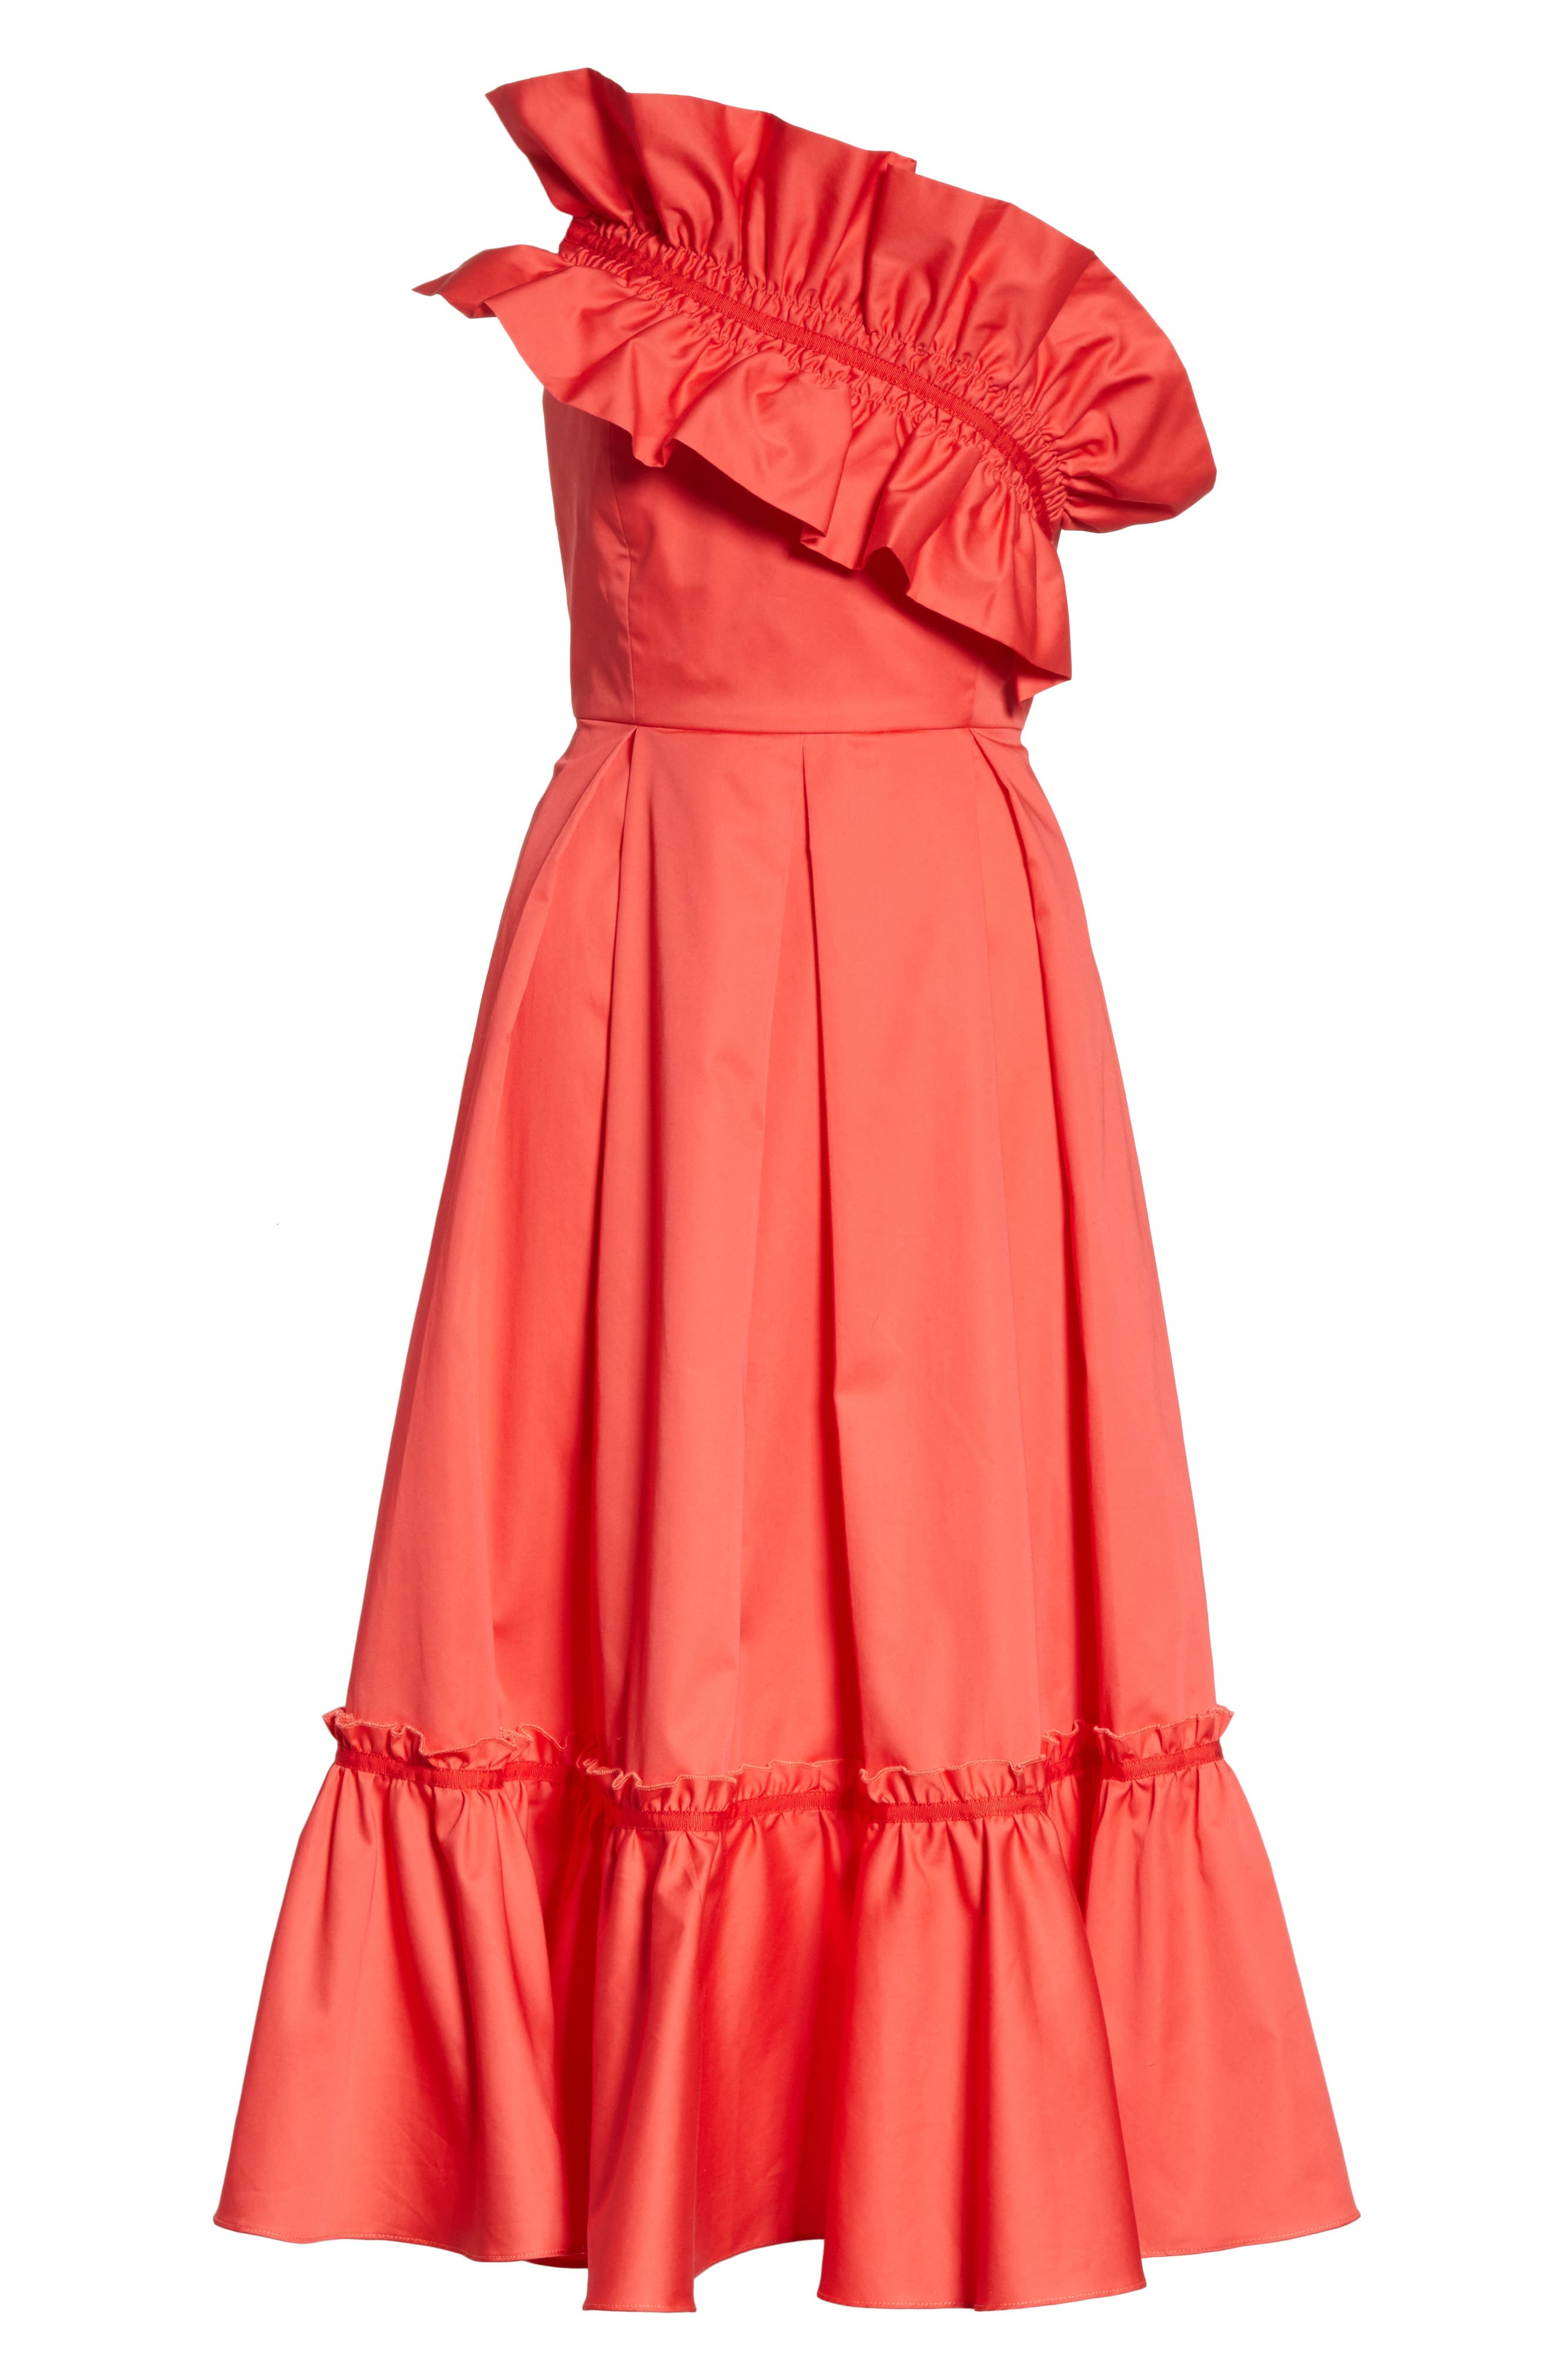 Prose & Poetry Harlow Ruffle Trim Strapless Dress,                             Alternate thumbnail 6, color,                             Watermelon